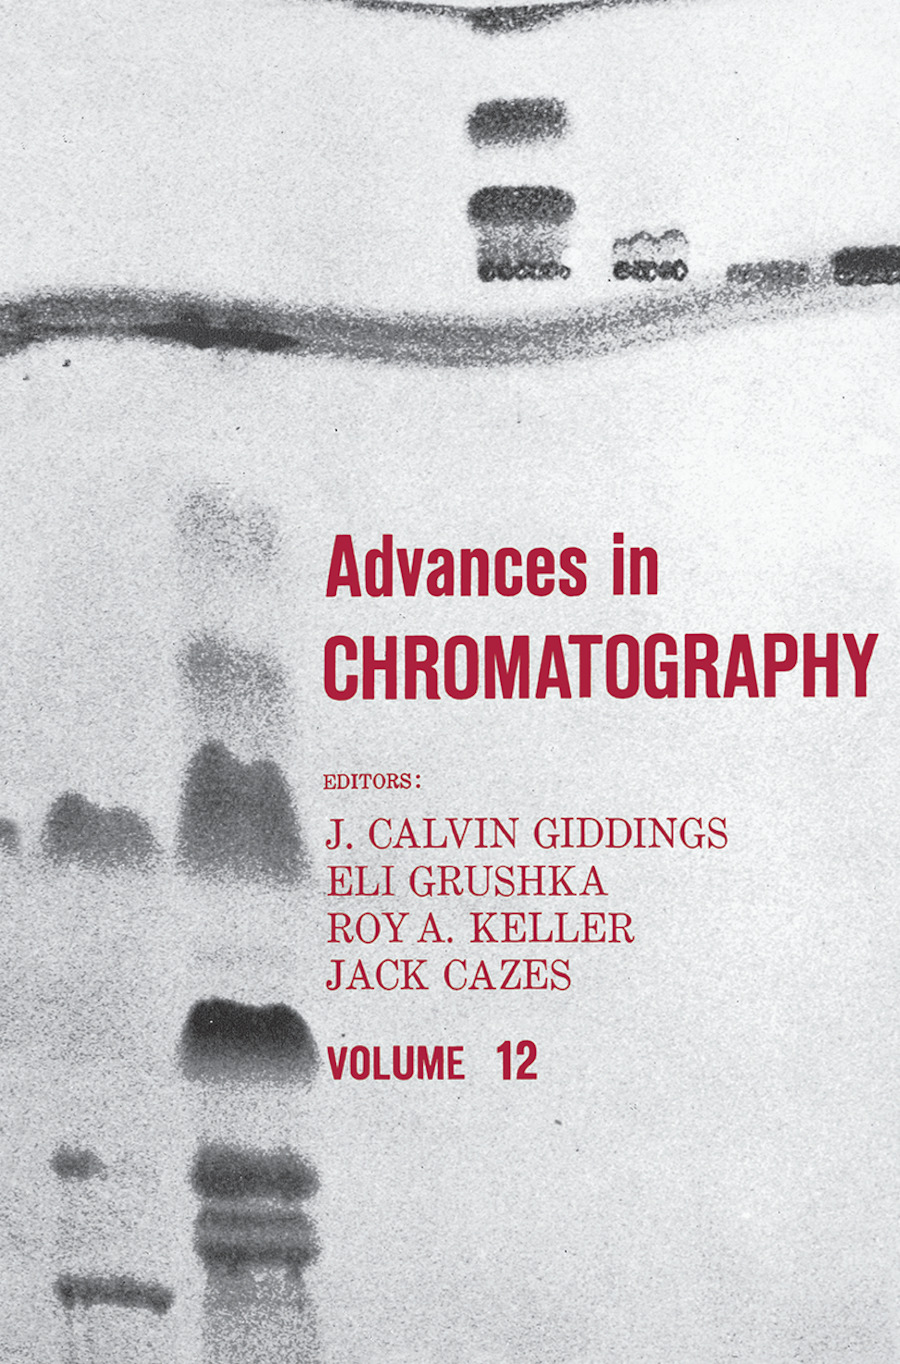 The Use of High-Pressure Liquid Chromatography in Pharmacology and Toxicology